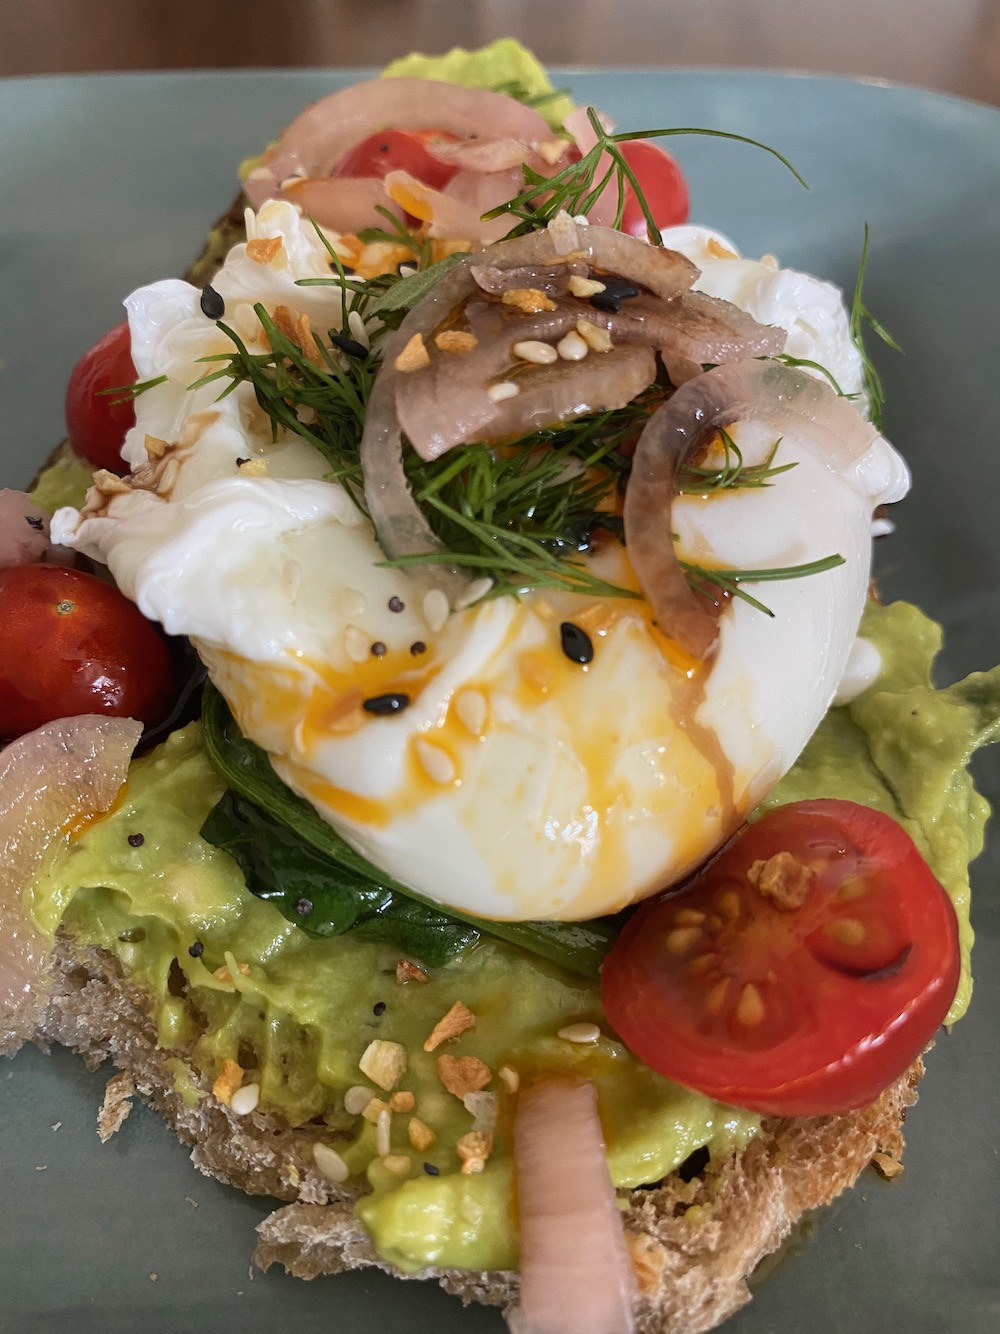 Fancy avocado toast with an egg!